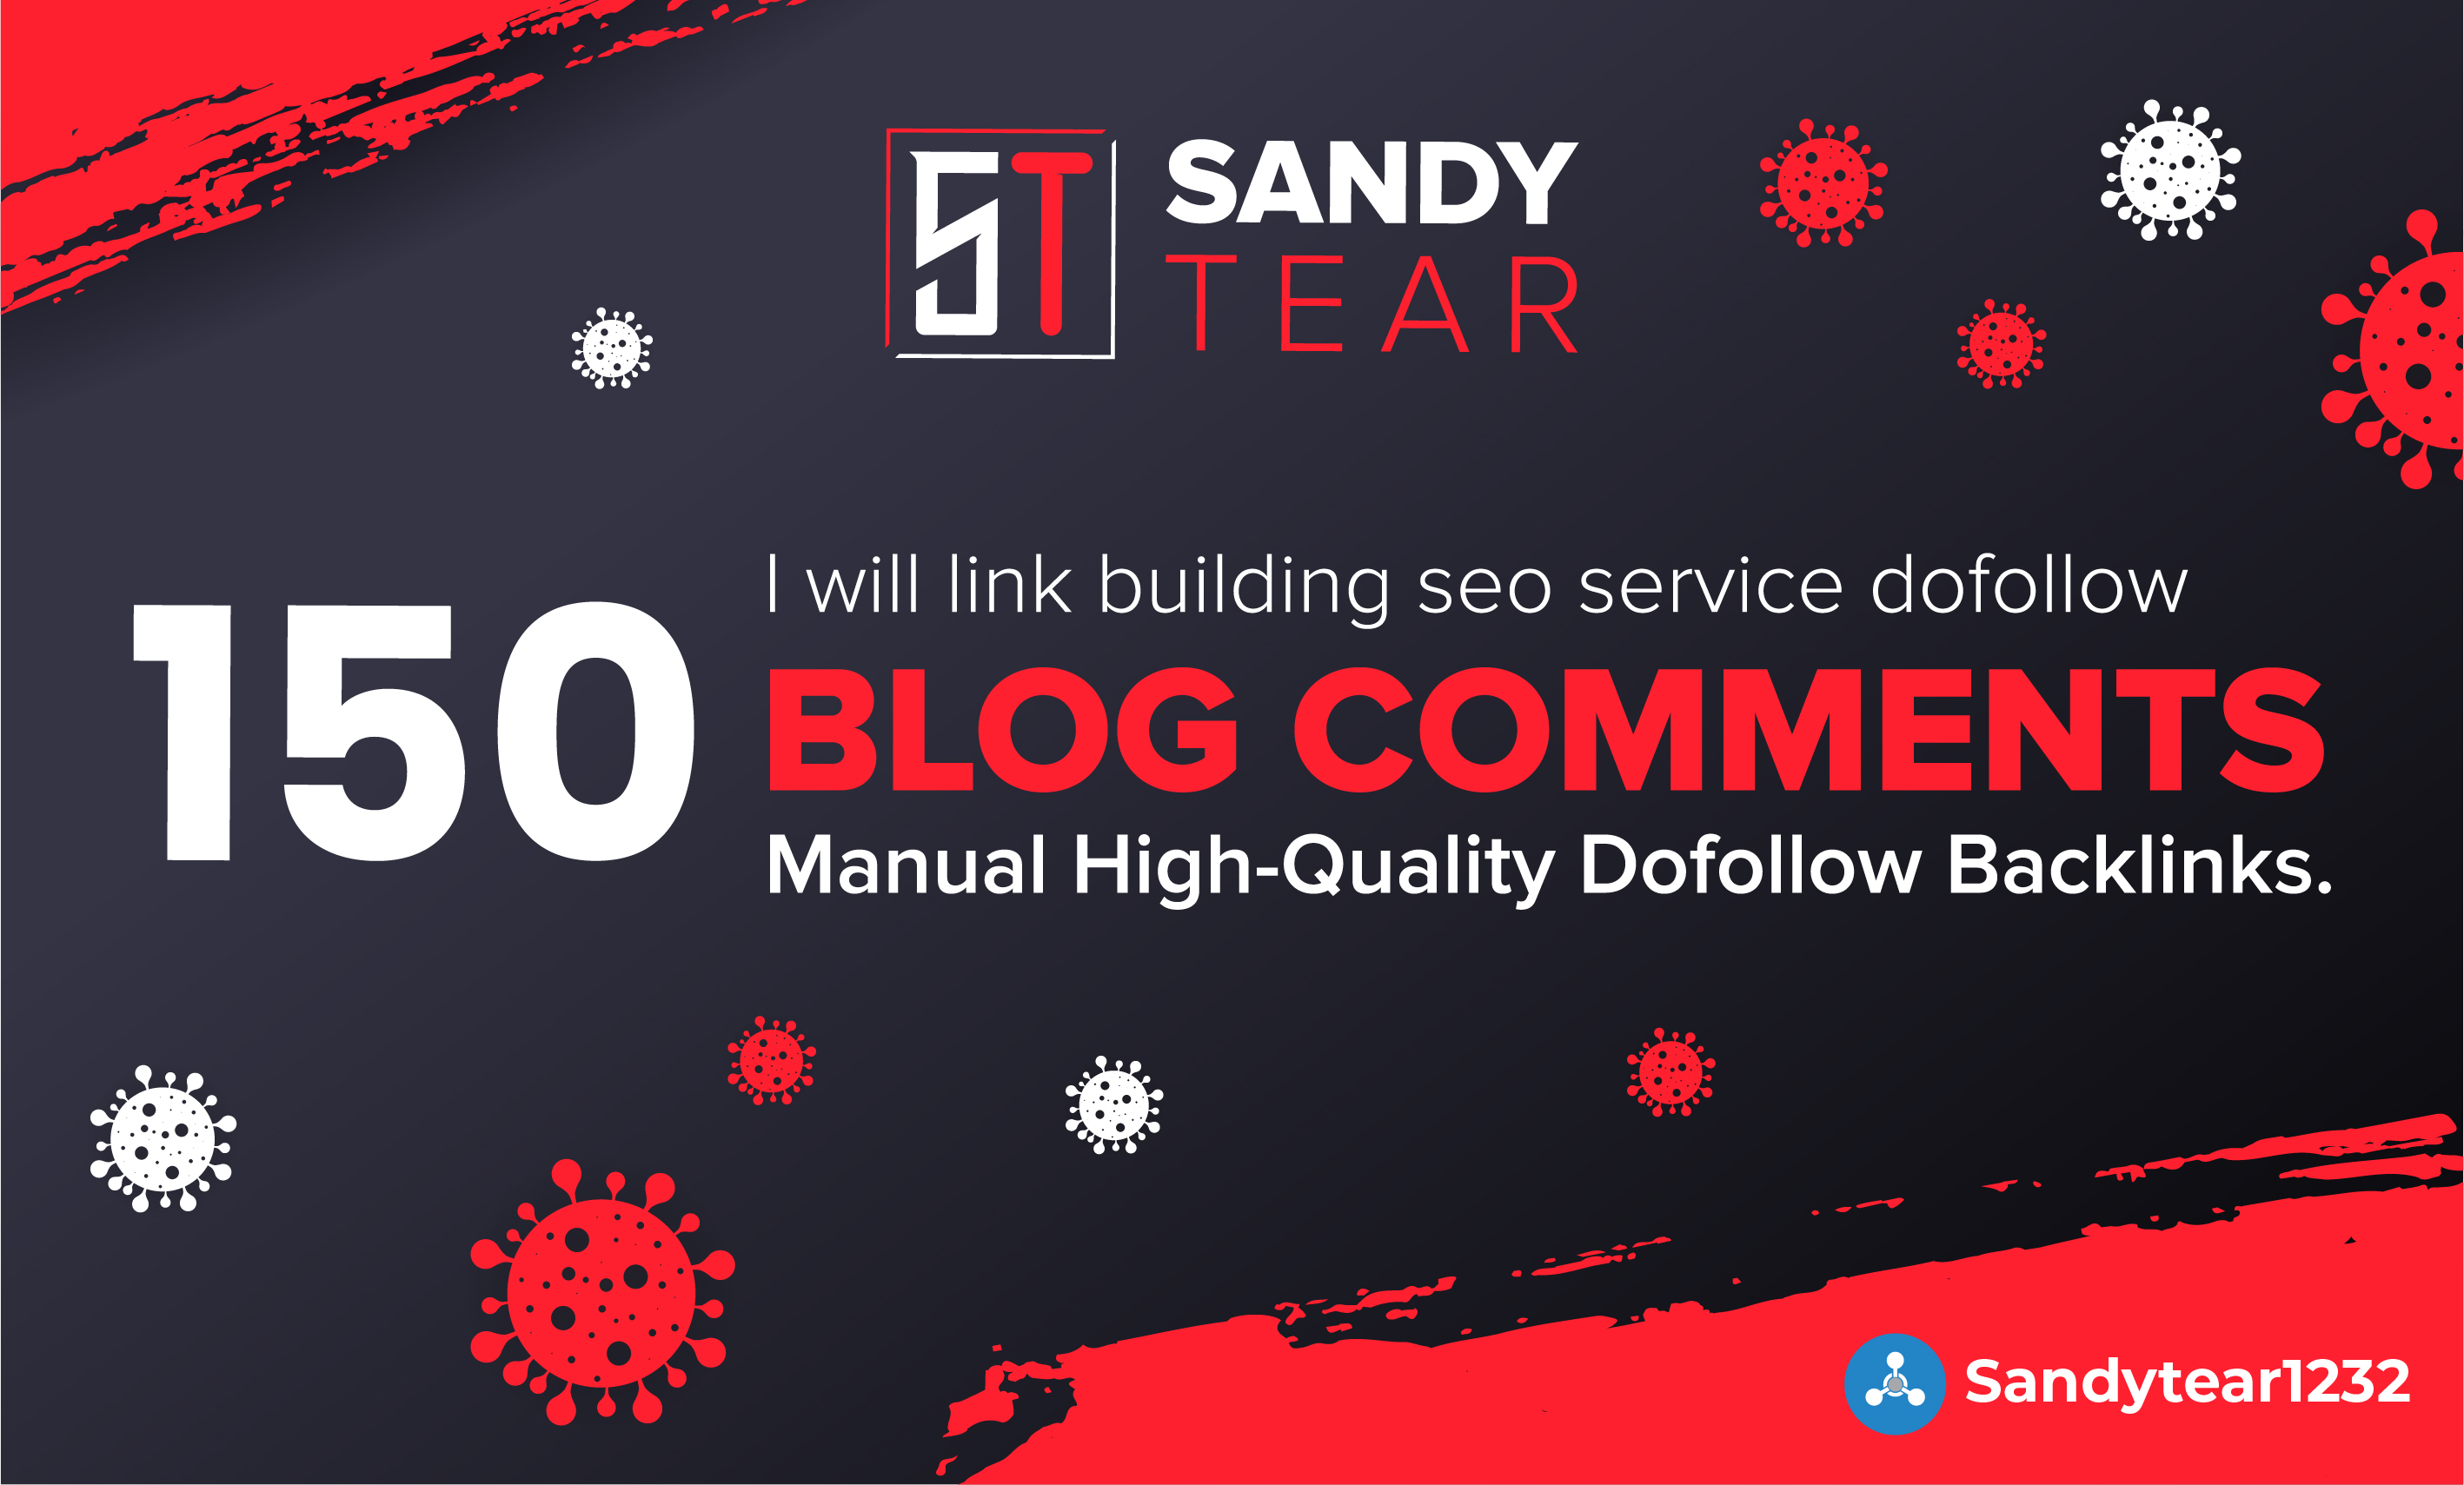 I will 150 blog comments link building SEO service dofollow backlinks